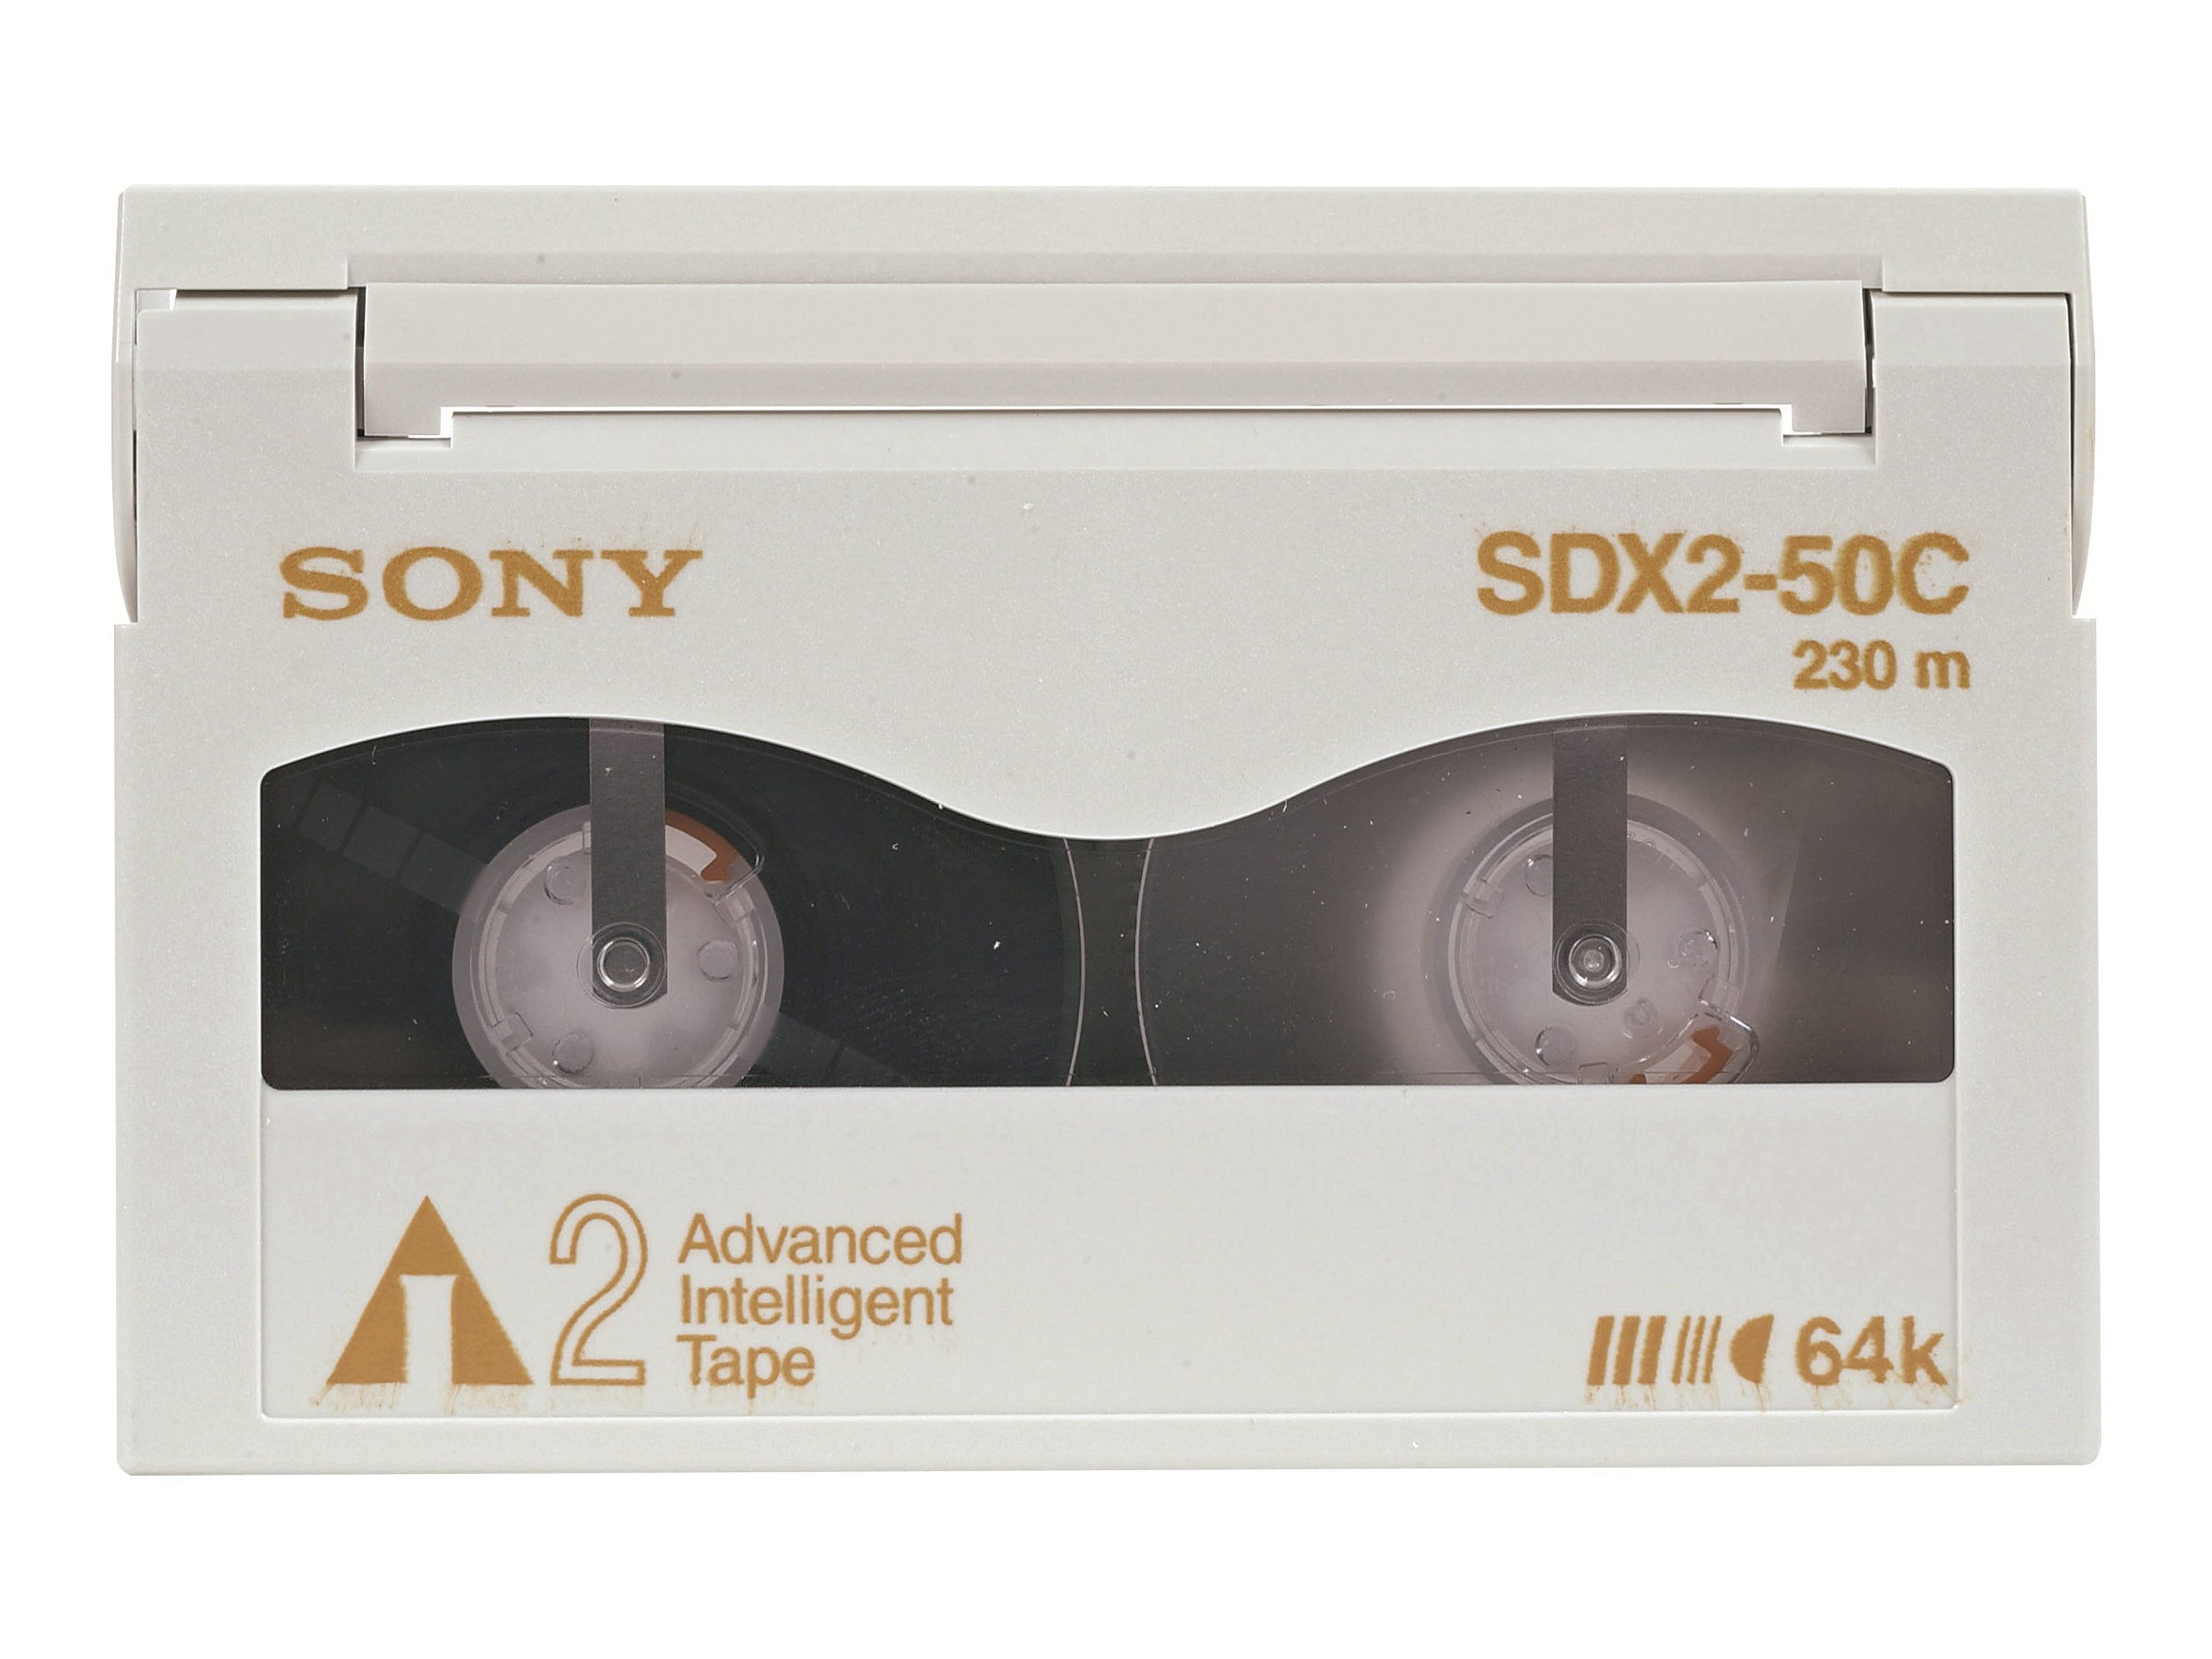 Sony 50 100GB AIT-2 8mm 230m Data Cartridge, SDX-250C